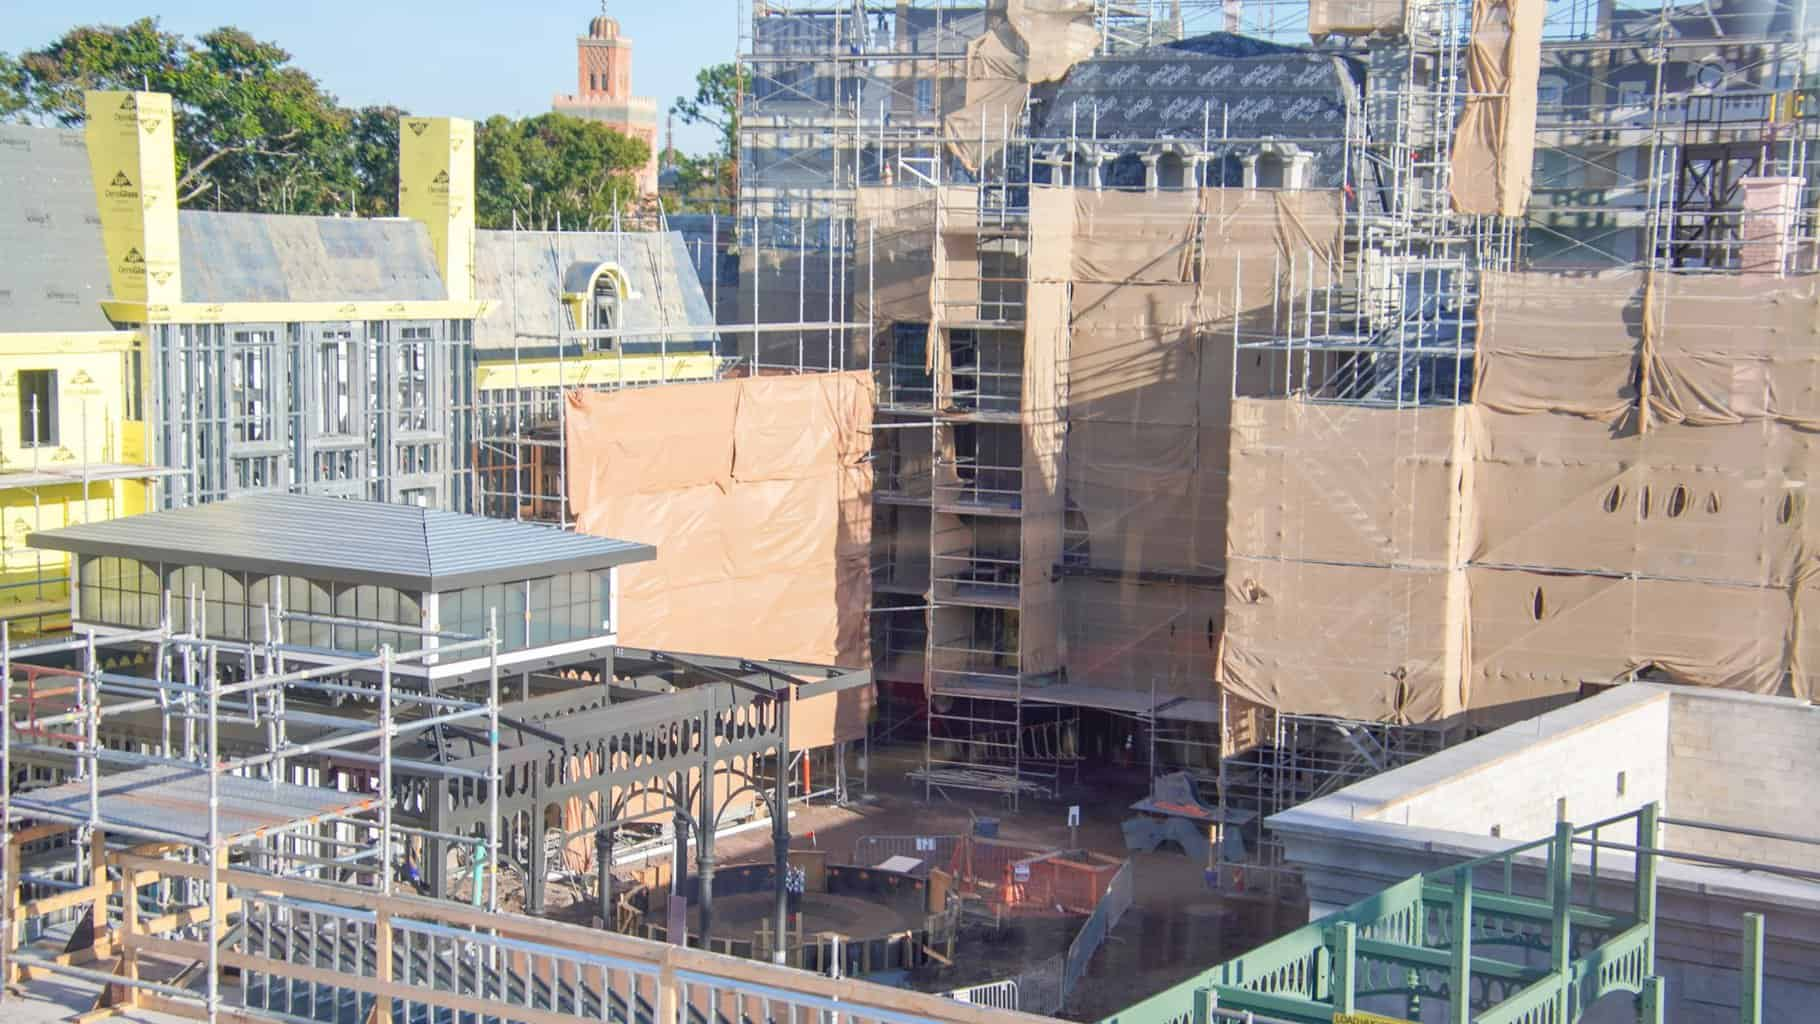 New entrance to Ratatouille France pavilion construction update November 2019